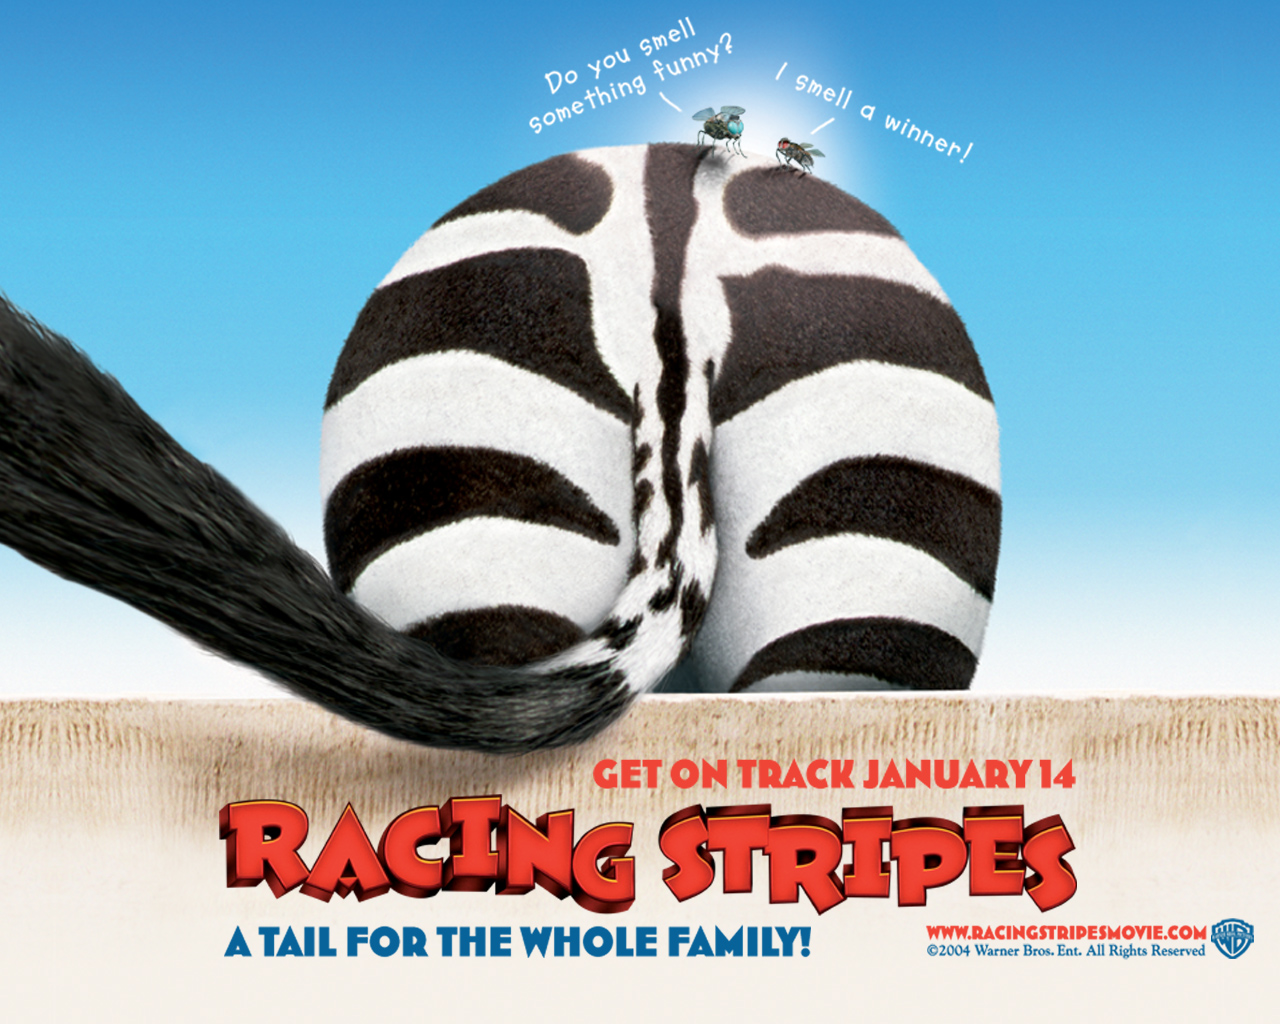 Racing stripes 4